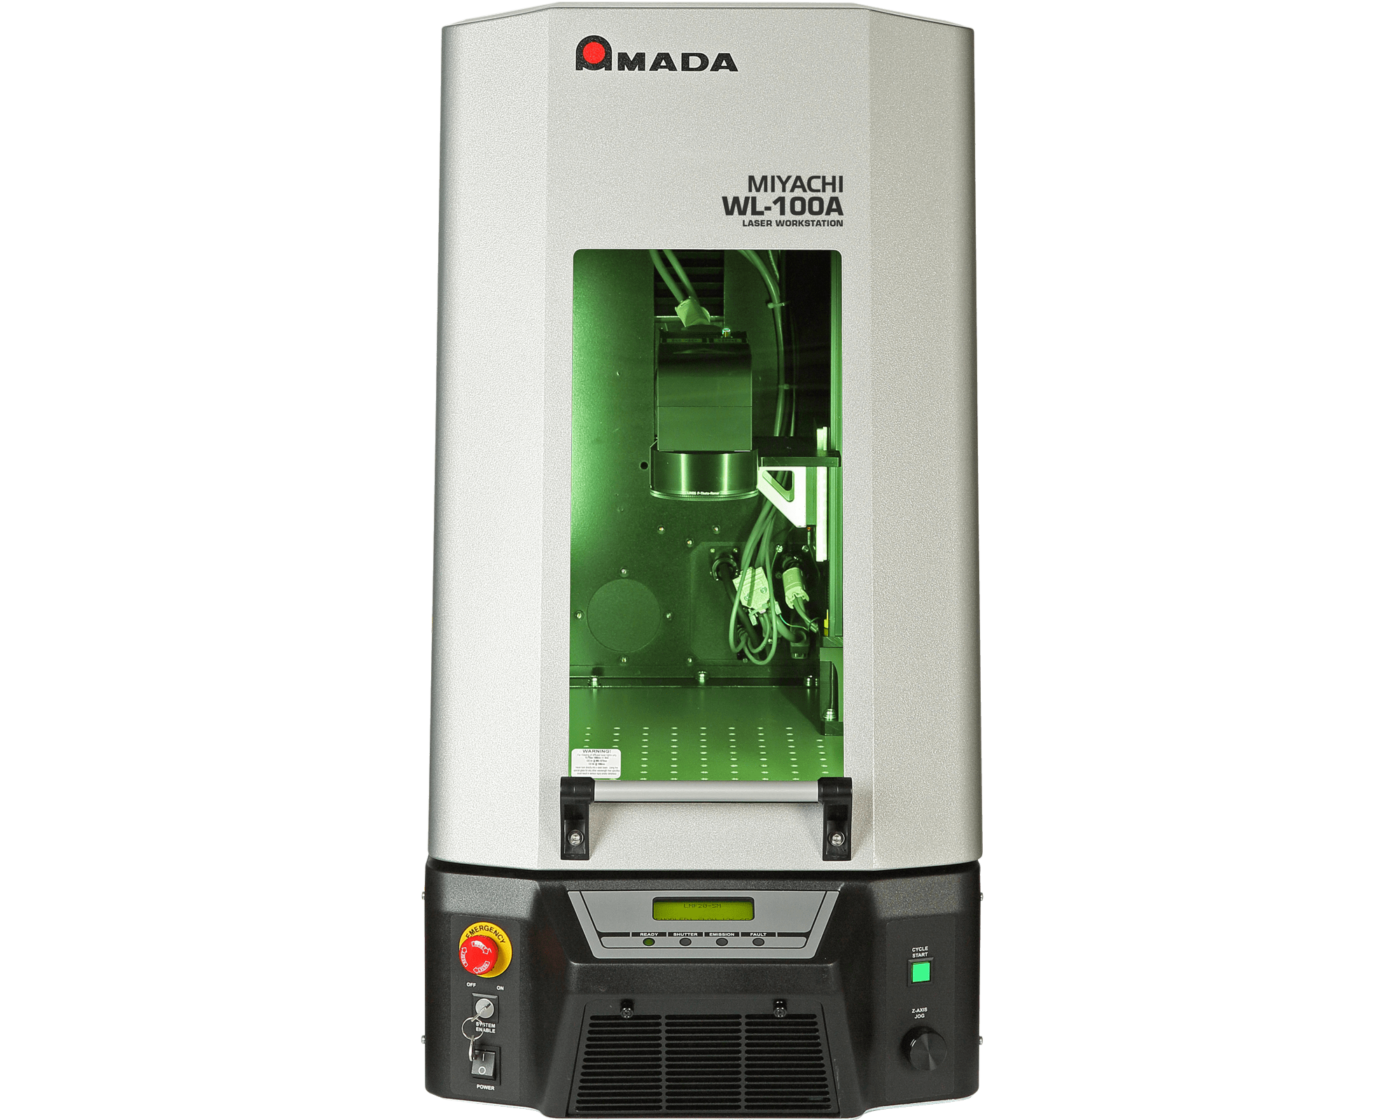 WL-100A Laser Marking Workstation